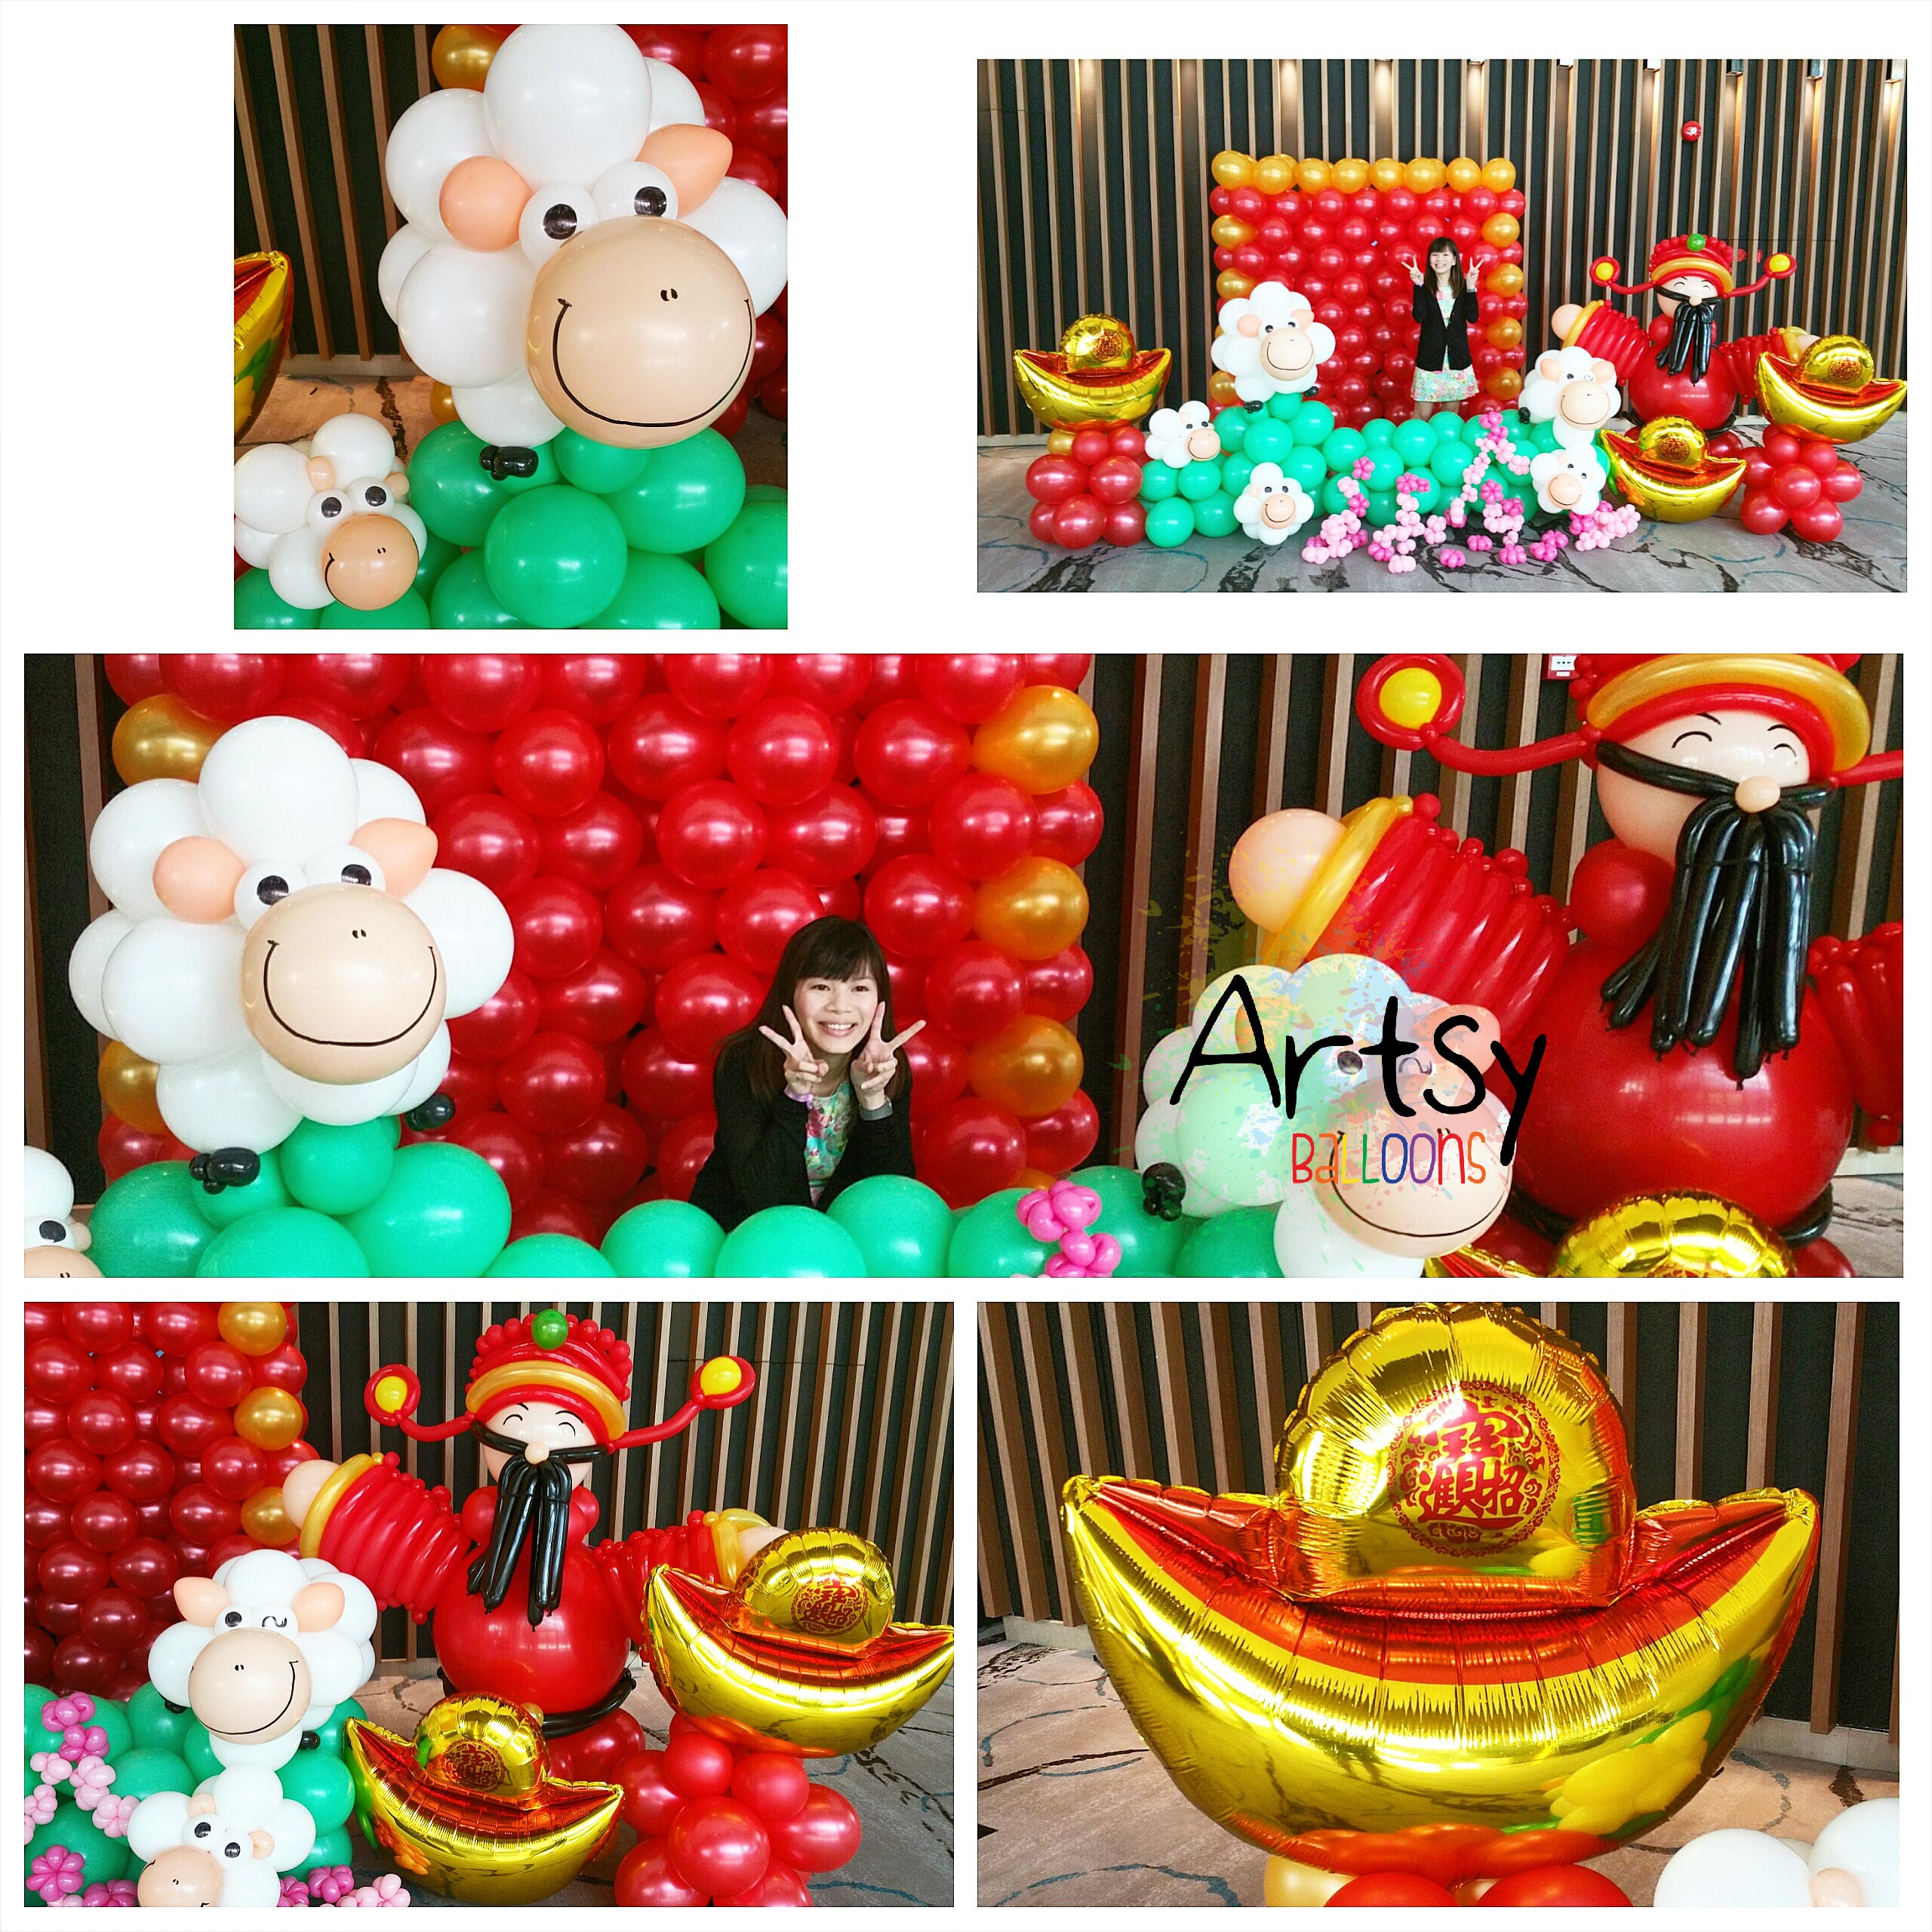 Balloon backdrop artsyballoons advance balloon for Balloon backdrop decoration